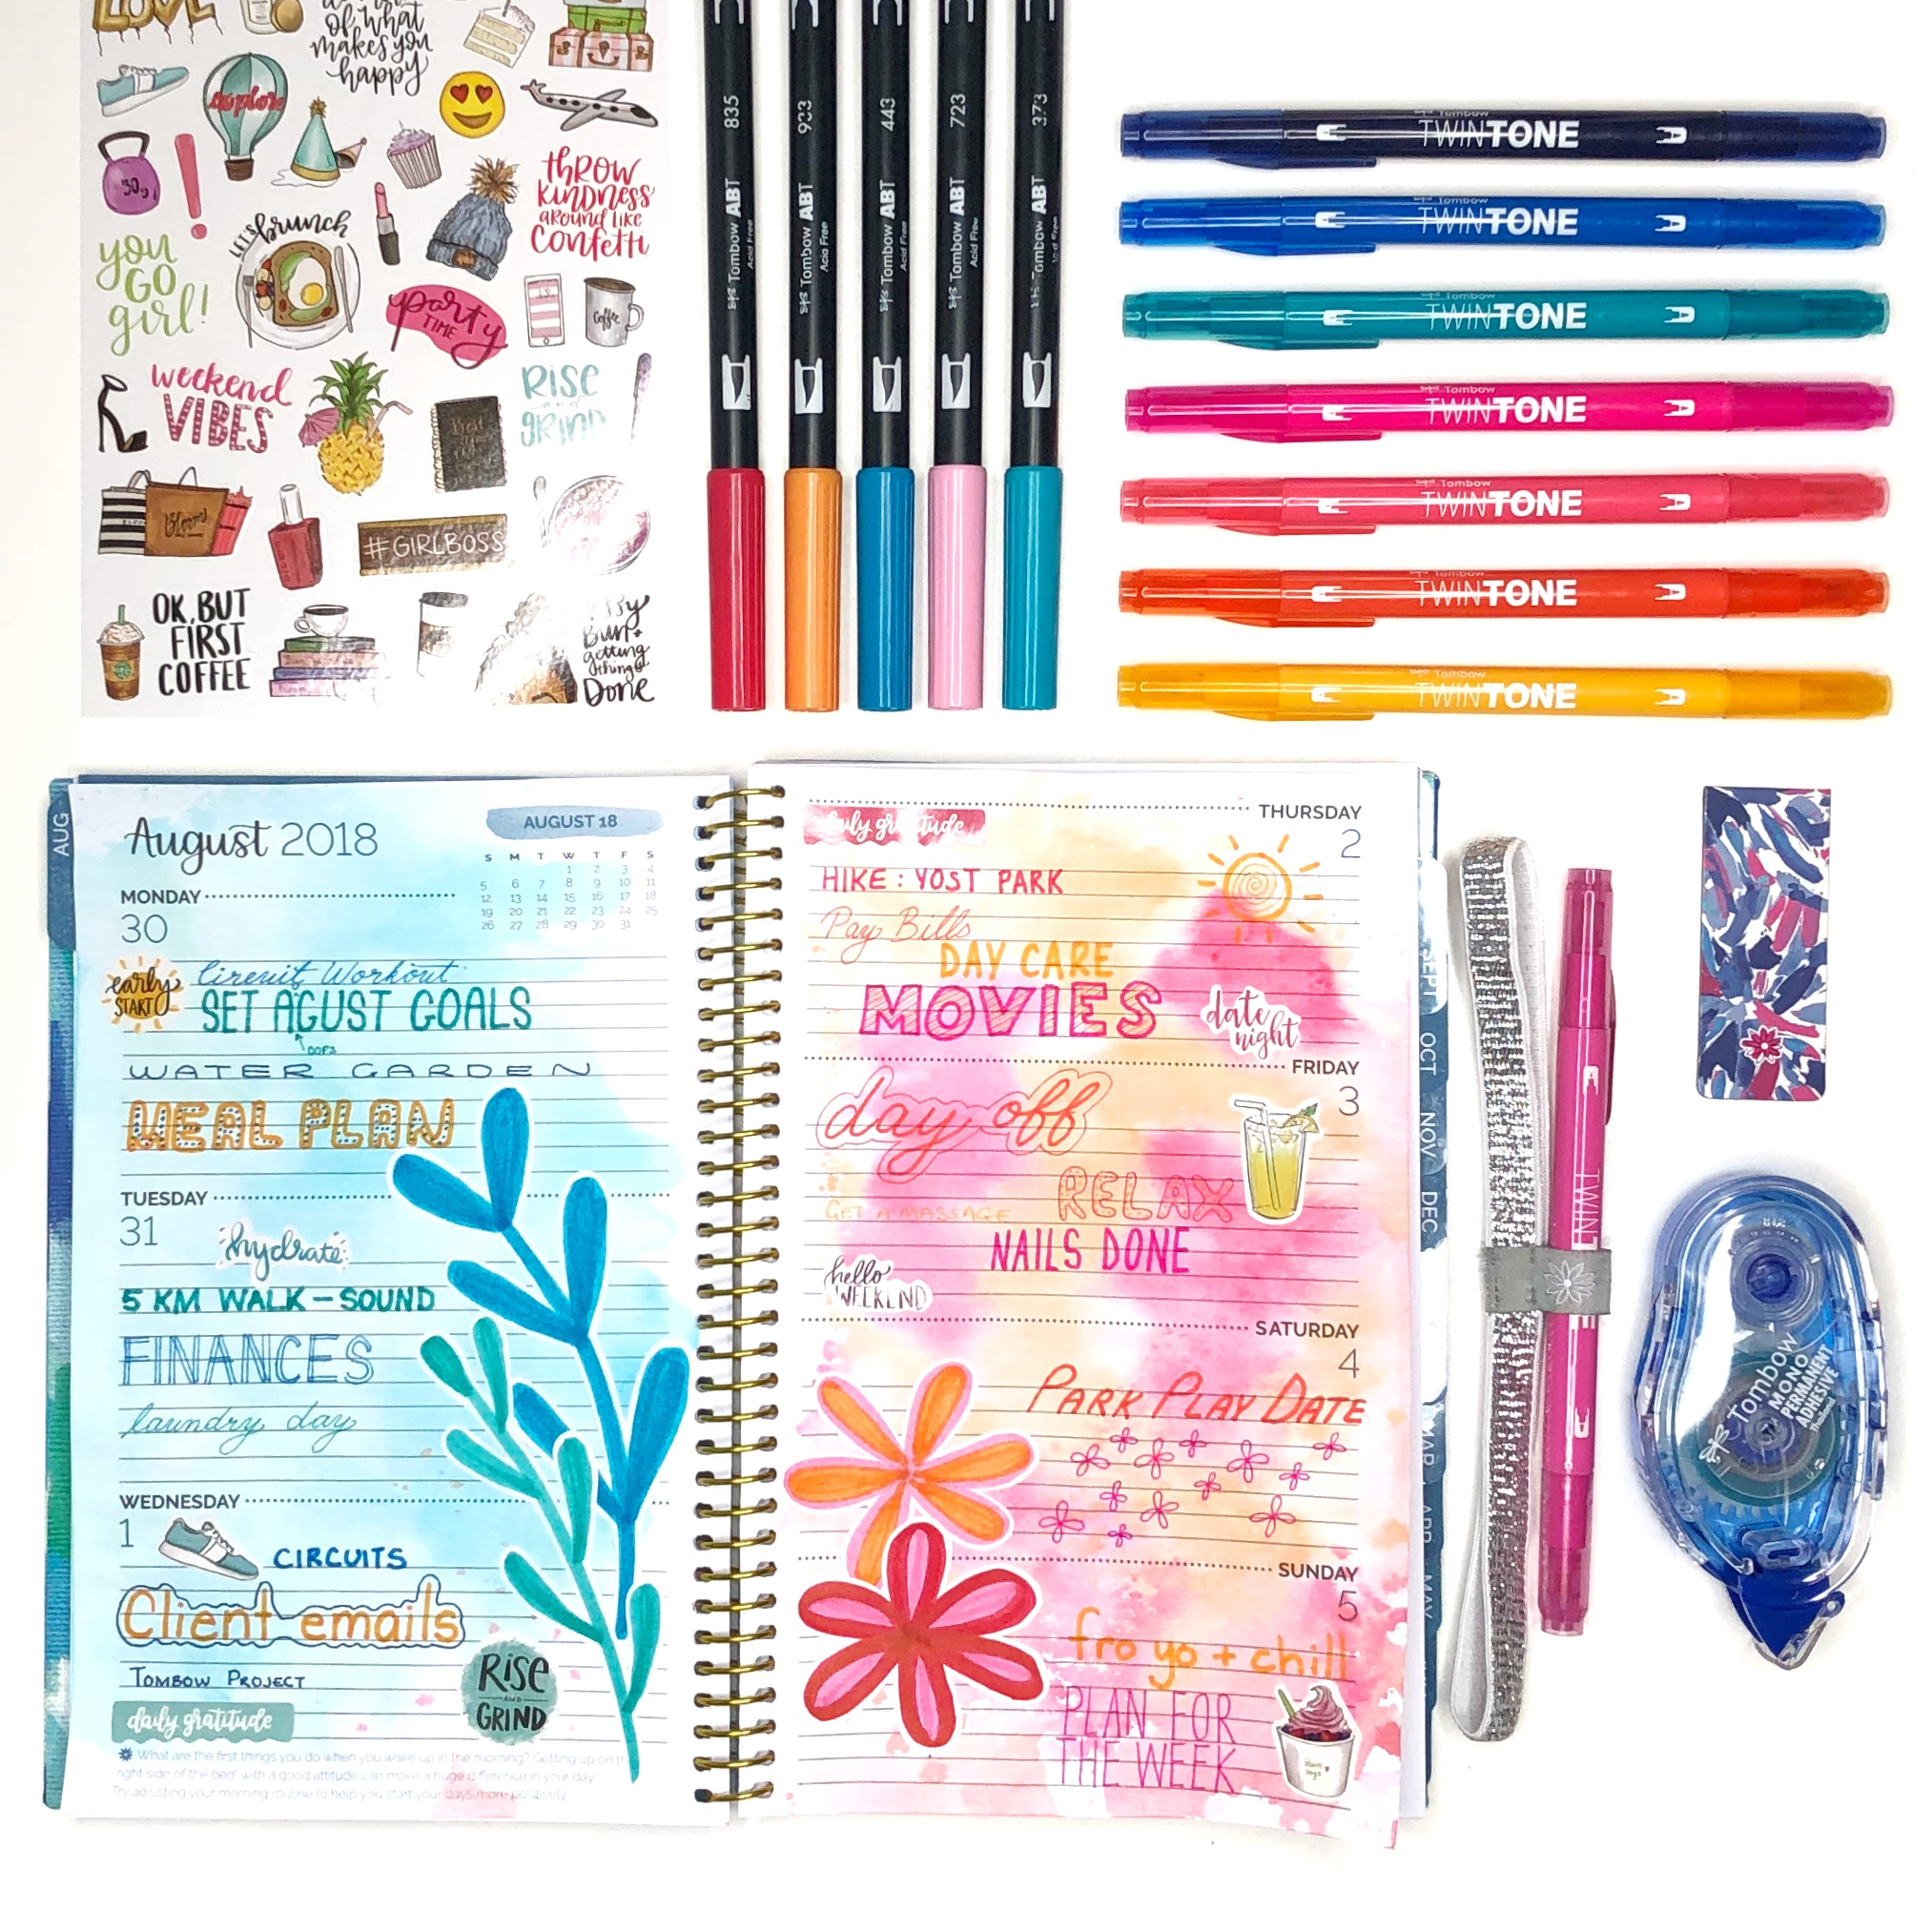 How to Make a Watercolor Background for Your Planner by Jessica Mack from BrownPaperBunny